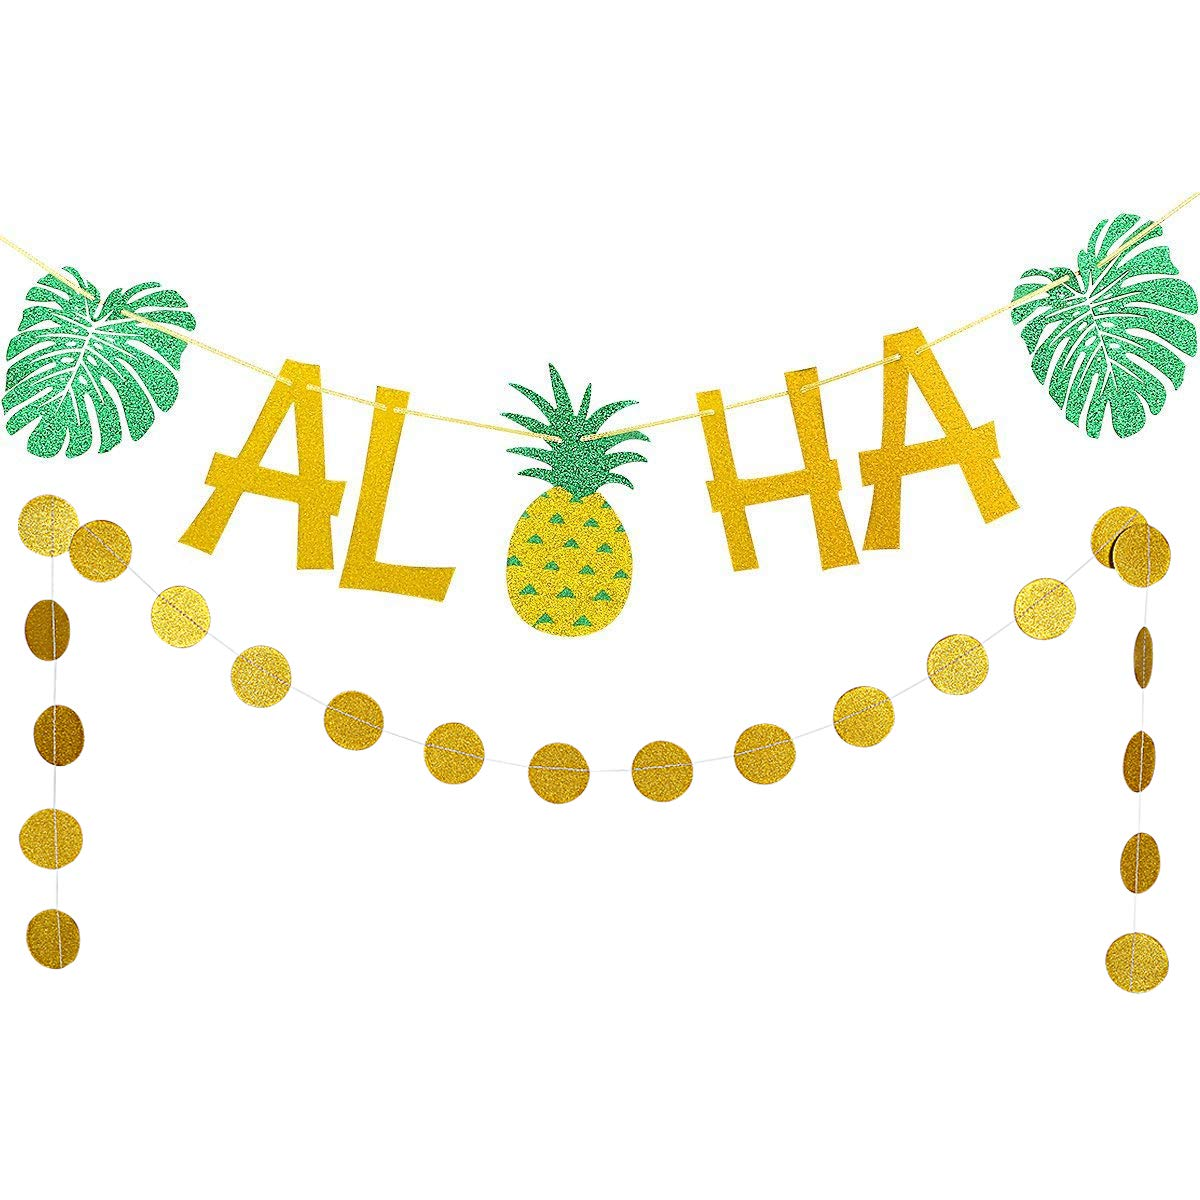 gold Glittery ALOHA Green Leaves Pineapple Garland and gold Glittery Circle Dots Garland(25pcs Circle Dots) for Hawaiian Tropical Luau Beach Summer Party Decoration Supplies